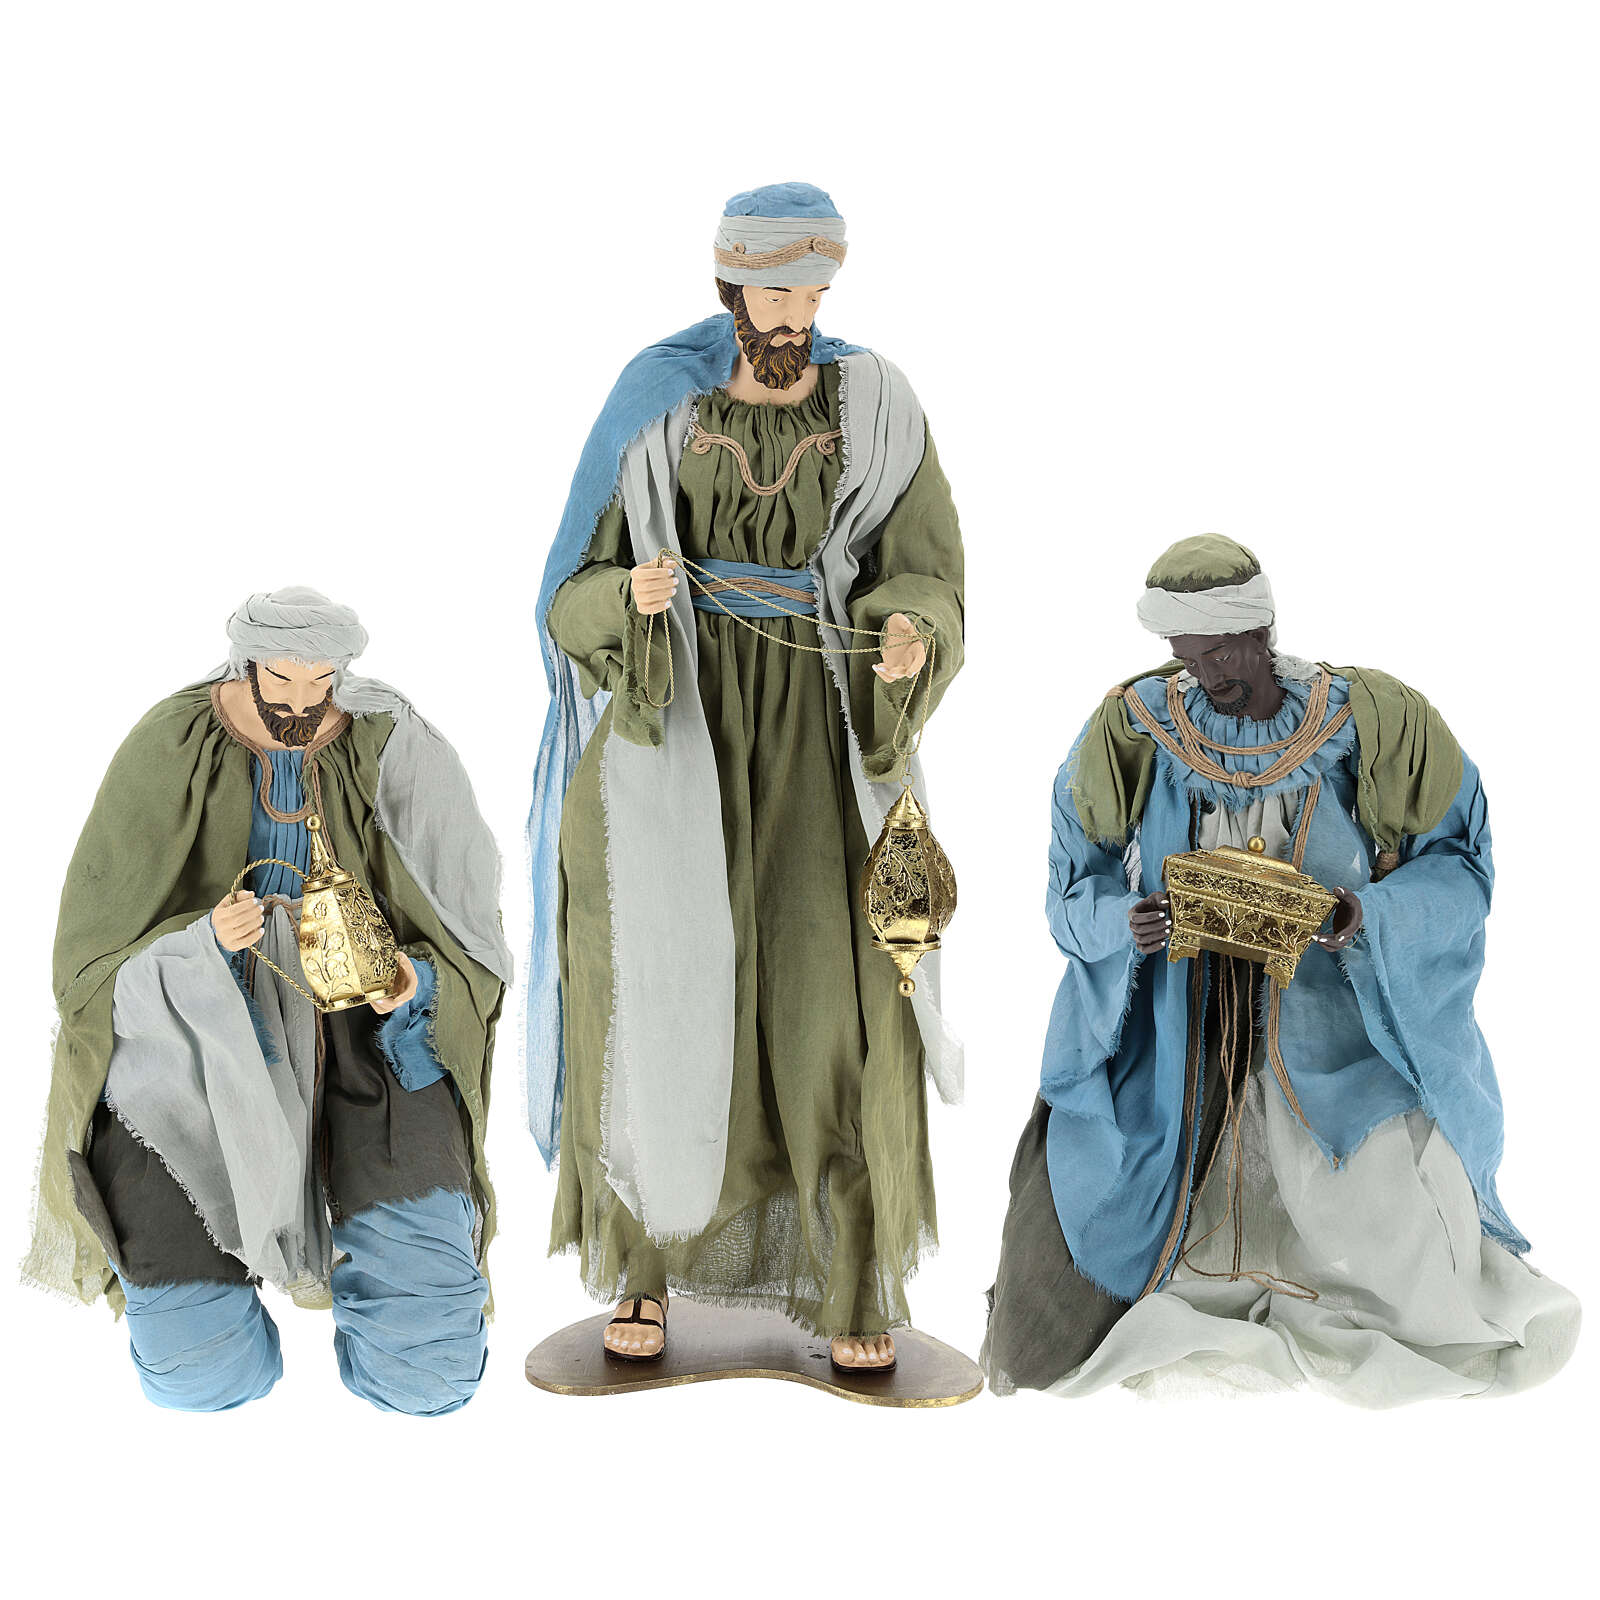 Nativity scene Magi 120 cm, in resin and fabric, with green and grey clothing 3